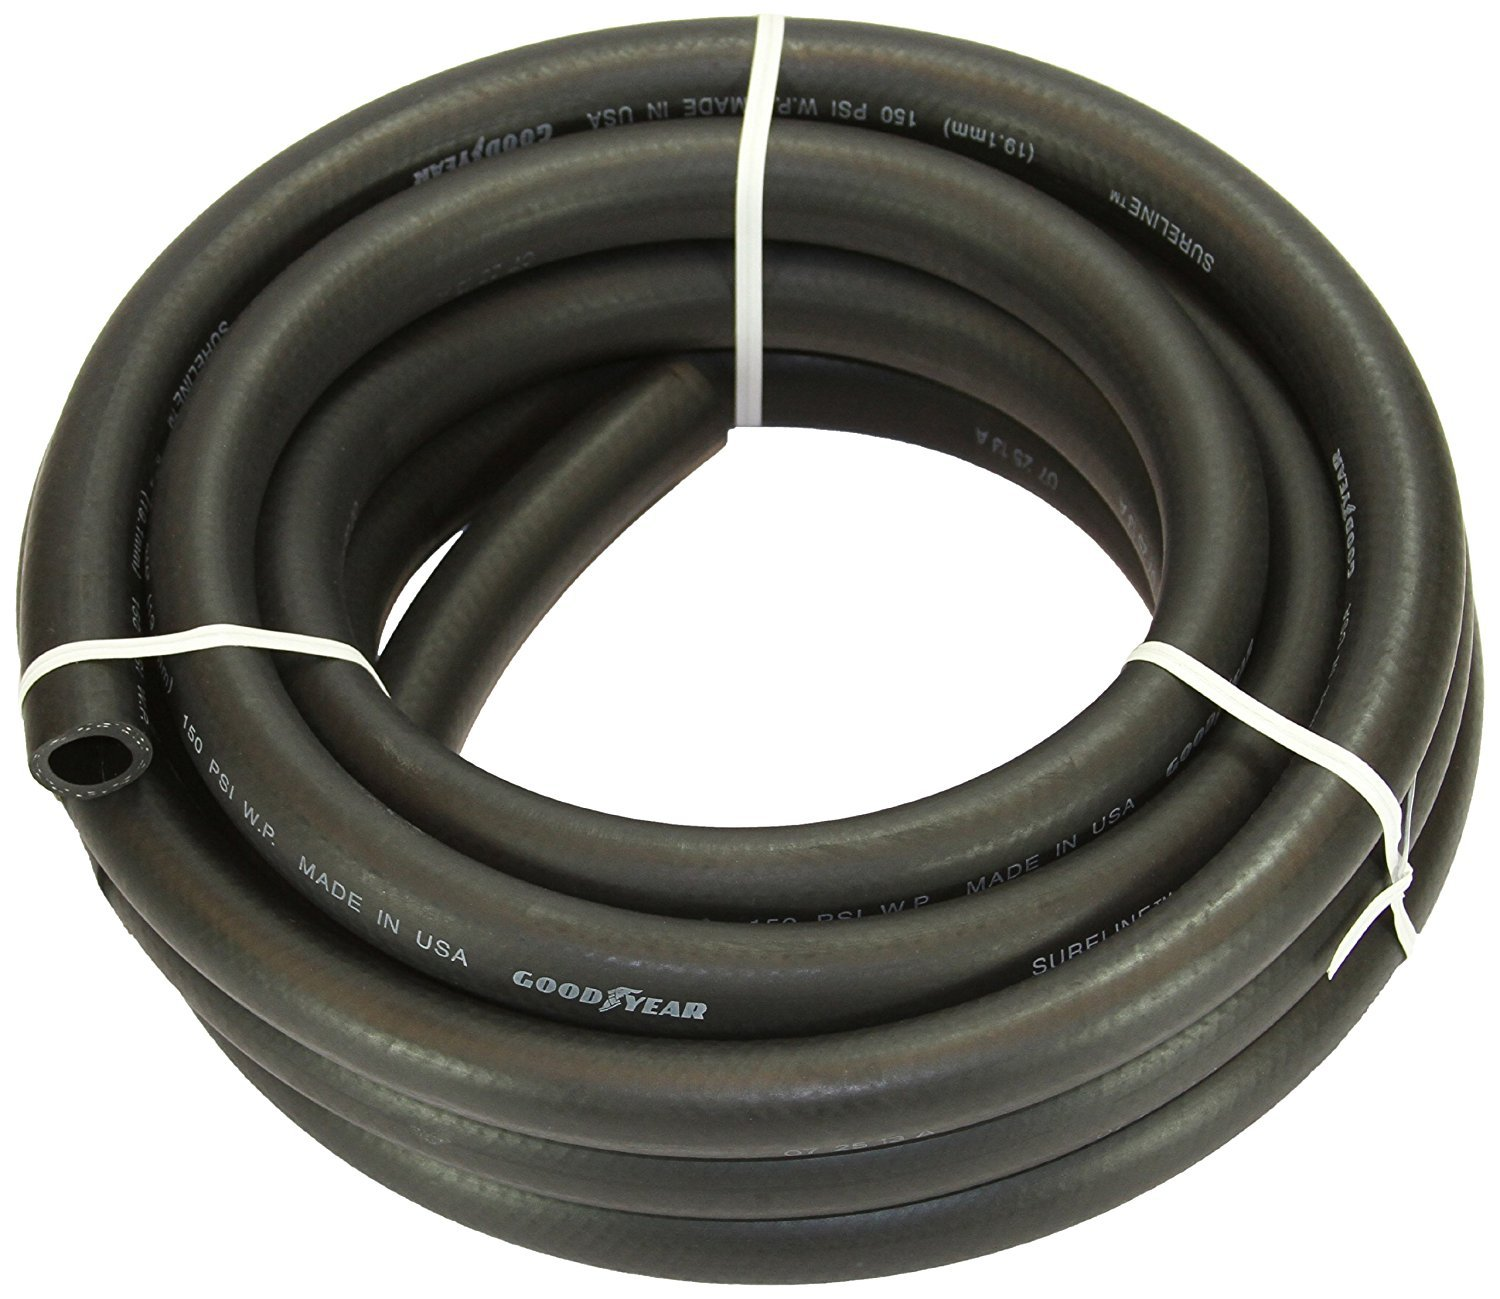 Abbott Rubber X1110-1002-25 EPDM Rubber Agricultural Spray Hose, 1-Inch ID by 25-Feet